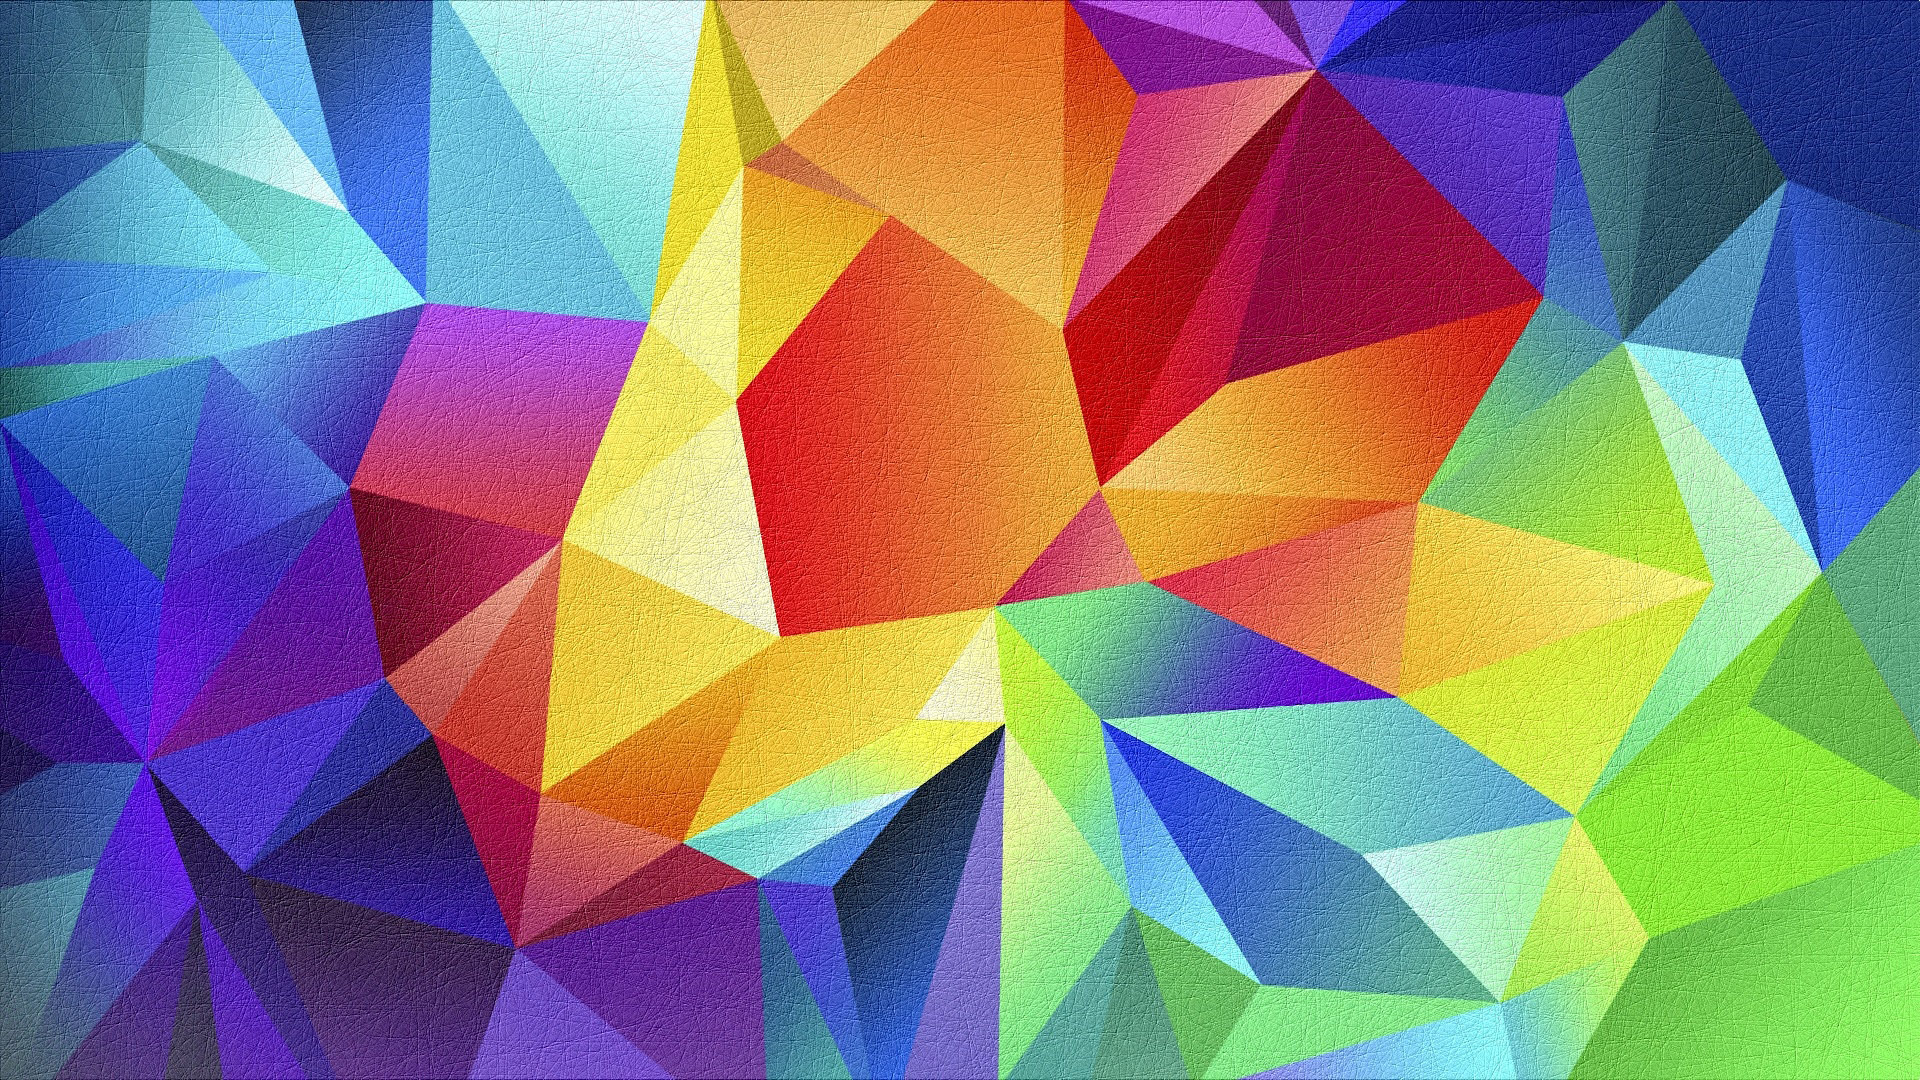 Samsung Galaxy Abstract Wallpaper